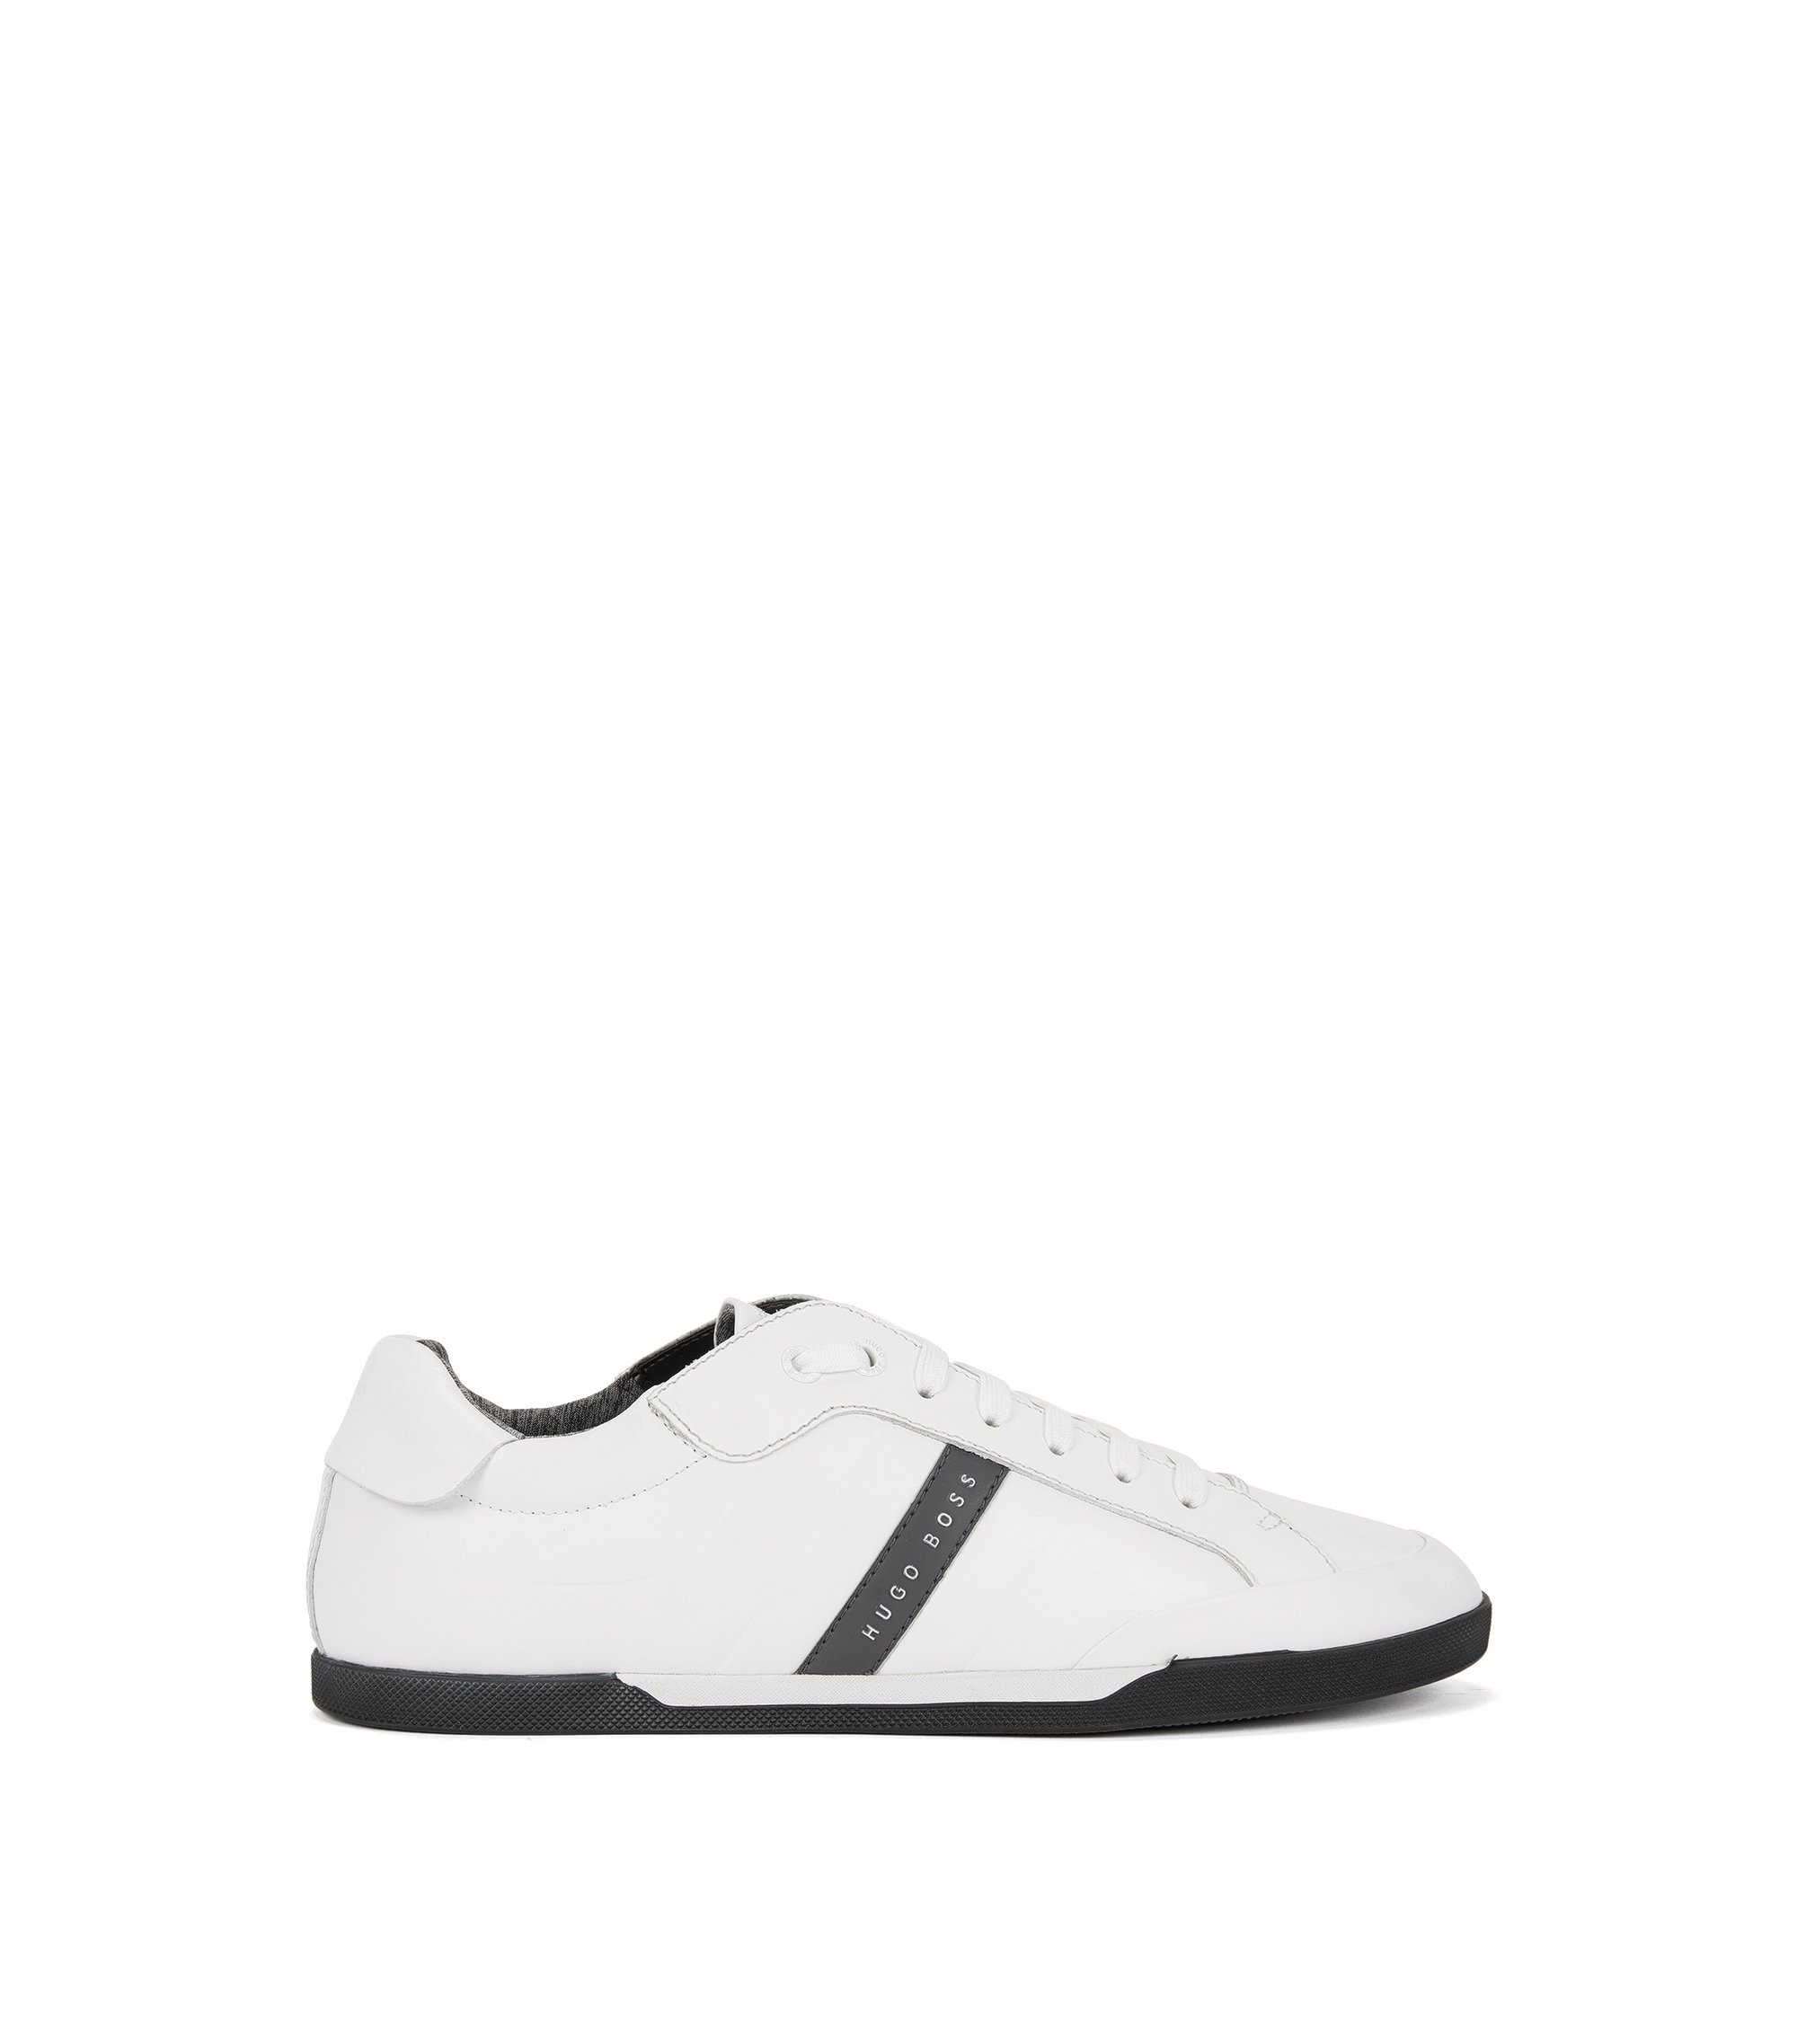 Sneakers low-top in pelle stampata, Bianco